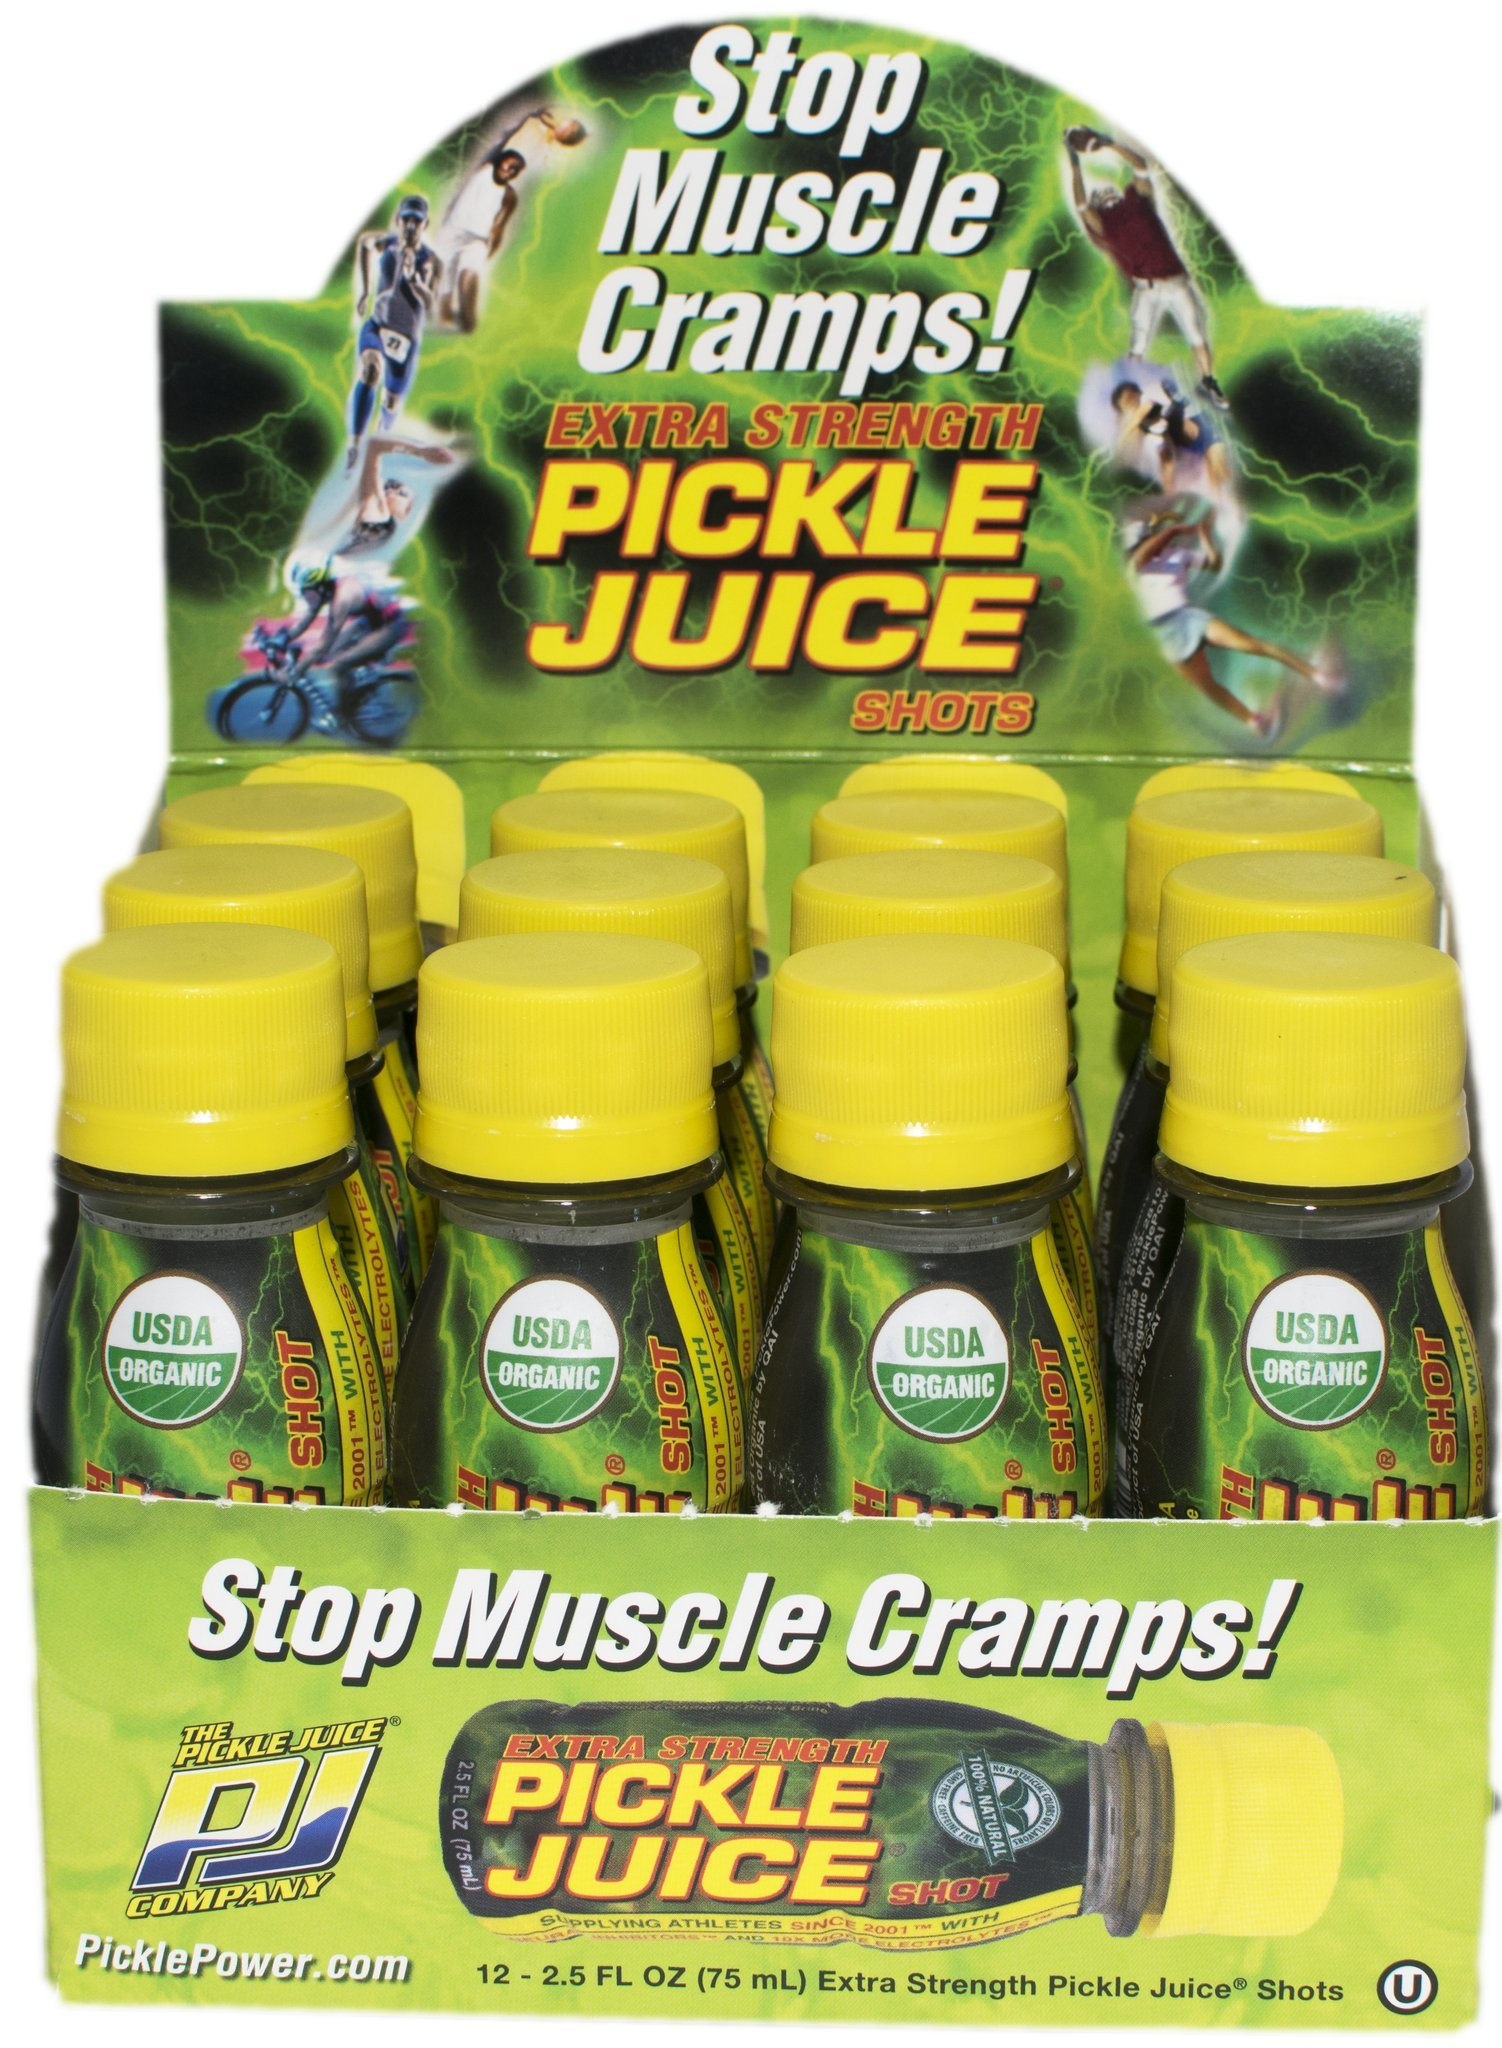 Pickle Juice Extra Strength Shots, 2.5 oz, 12 pack by Pickle Juice